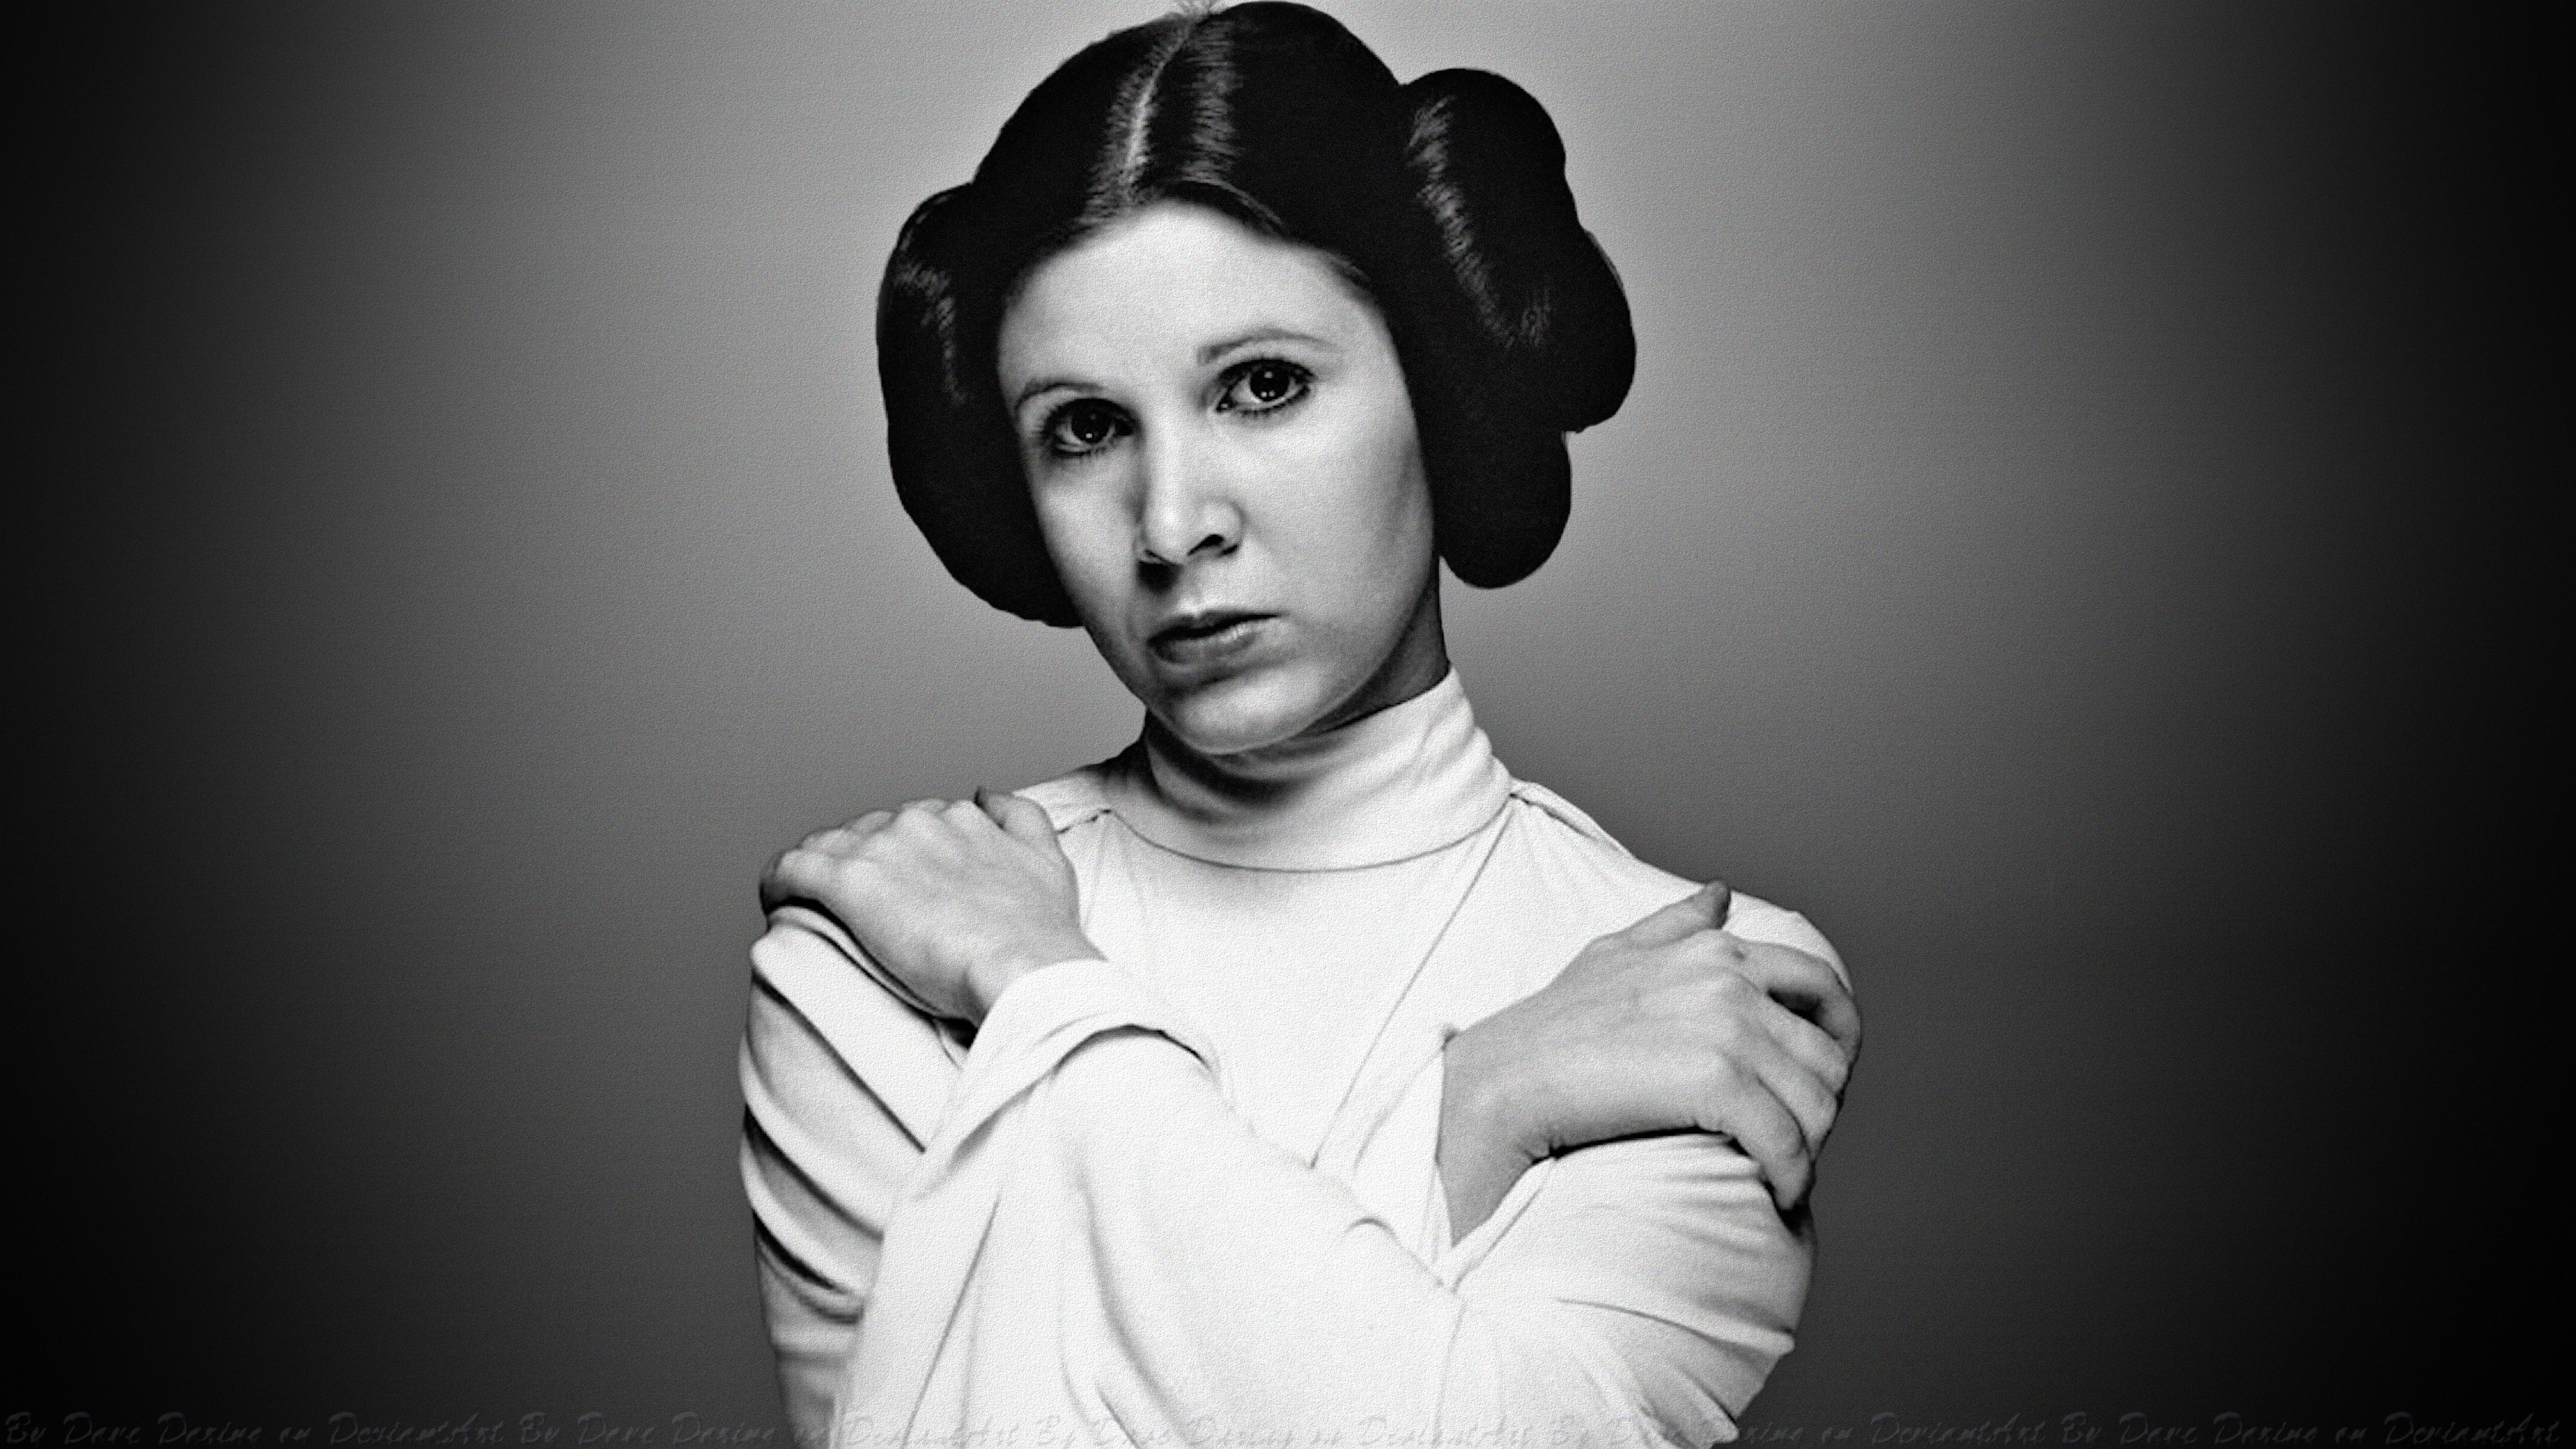 Carrie Fisher, 1956 - 2016